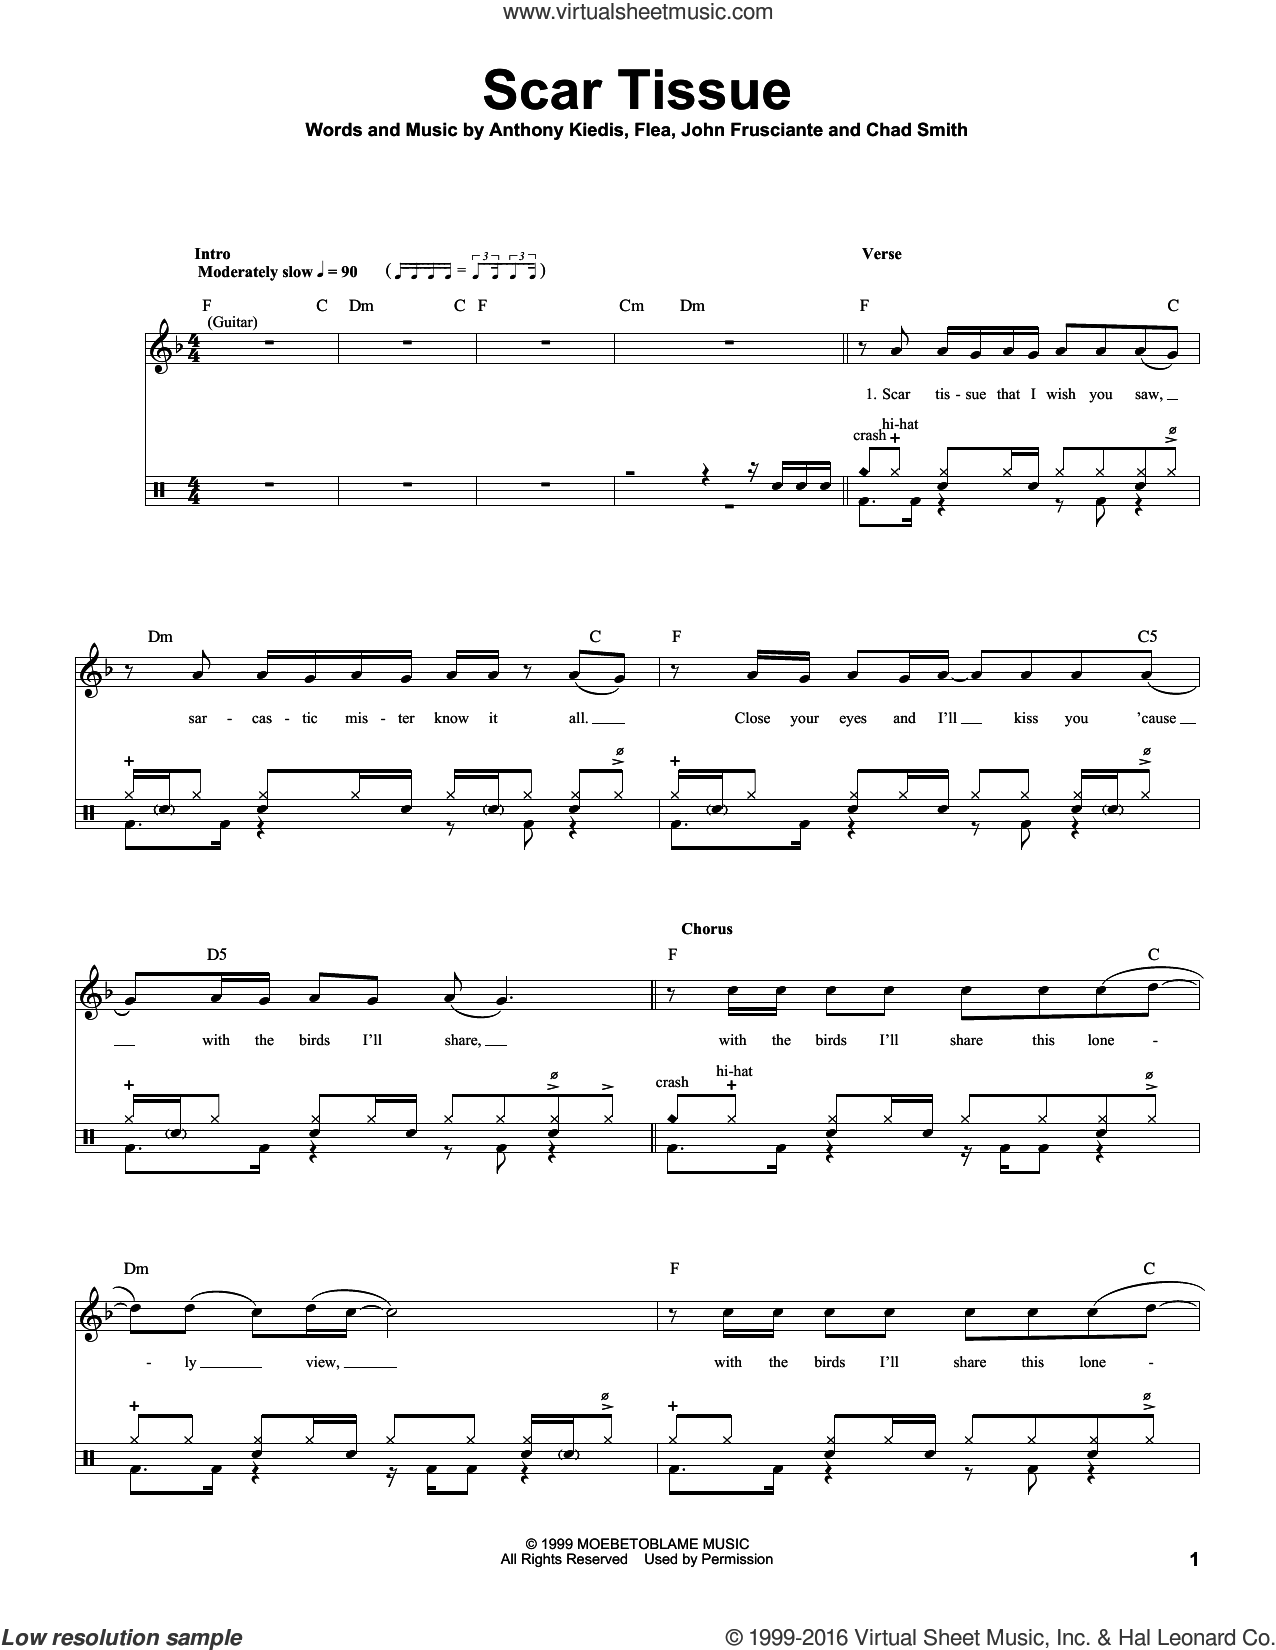 Scar Tissue sheet music for drums by Red Hot Chili Peppers, Anthony Kiedis, Chad Smith, Flea and John Frusciante, intermediate skill level